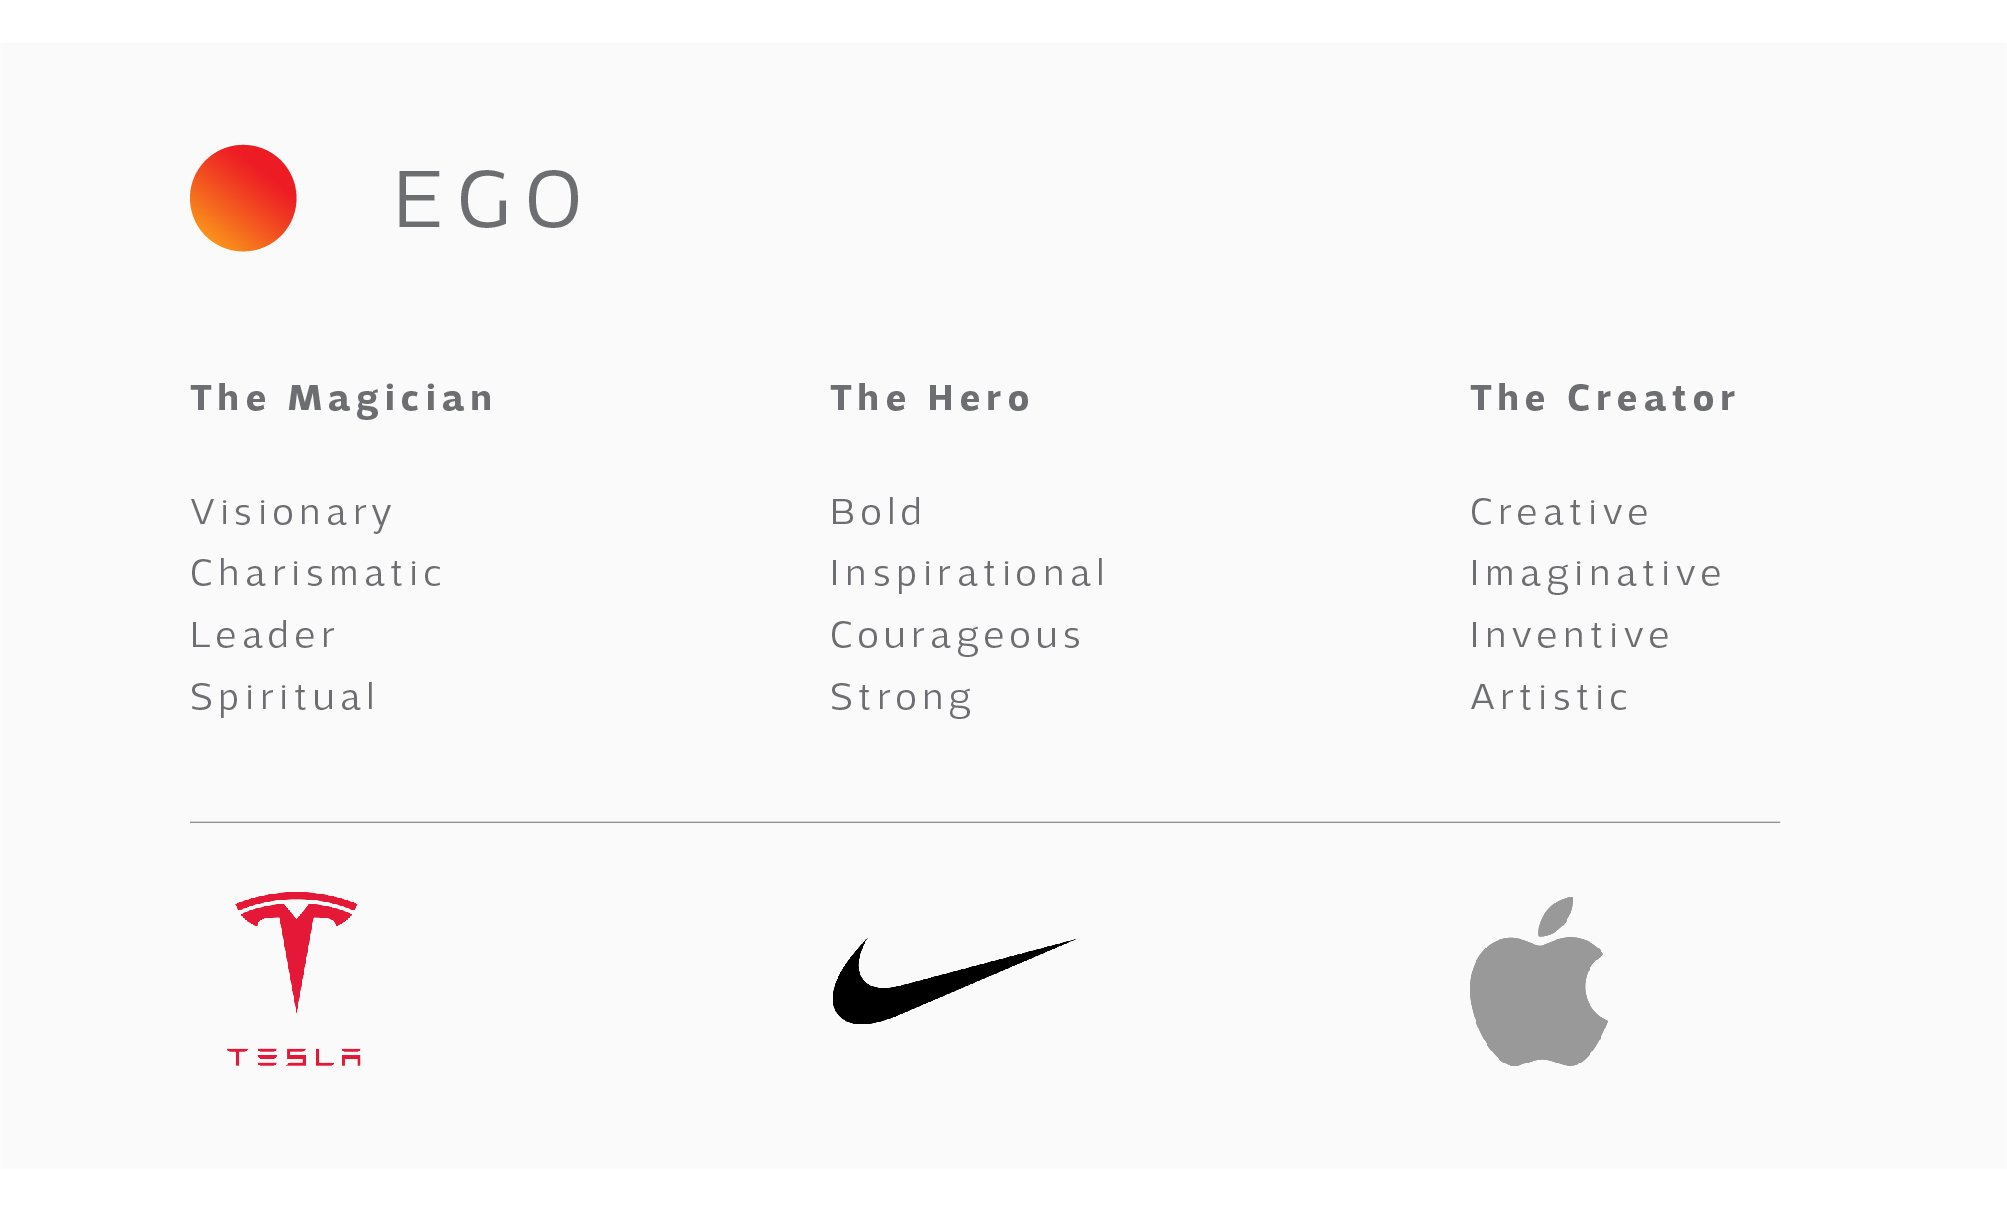 ego, brand, personality, types, magician, the-hero, the-creator